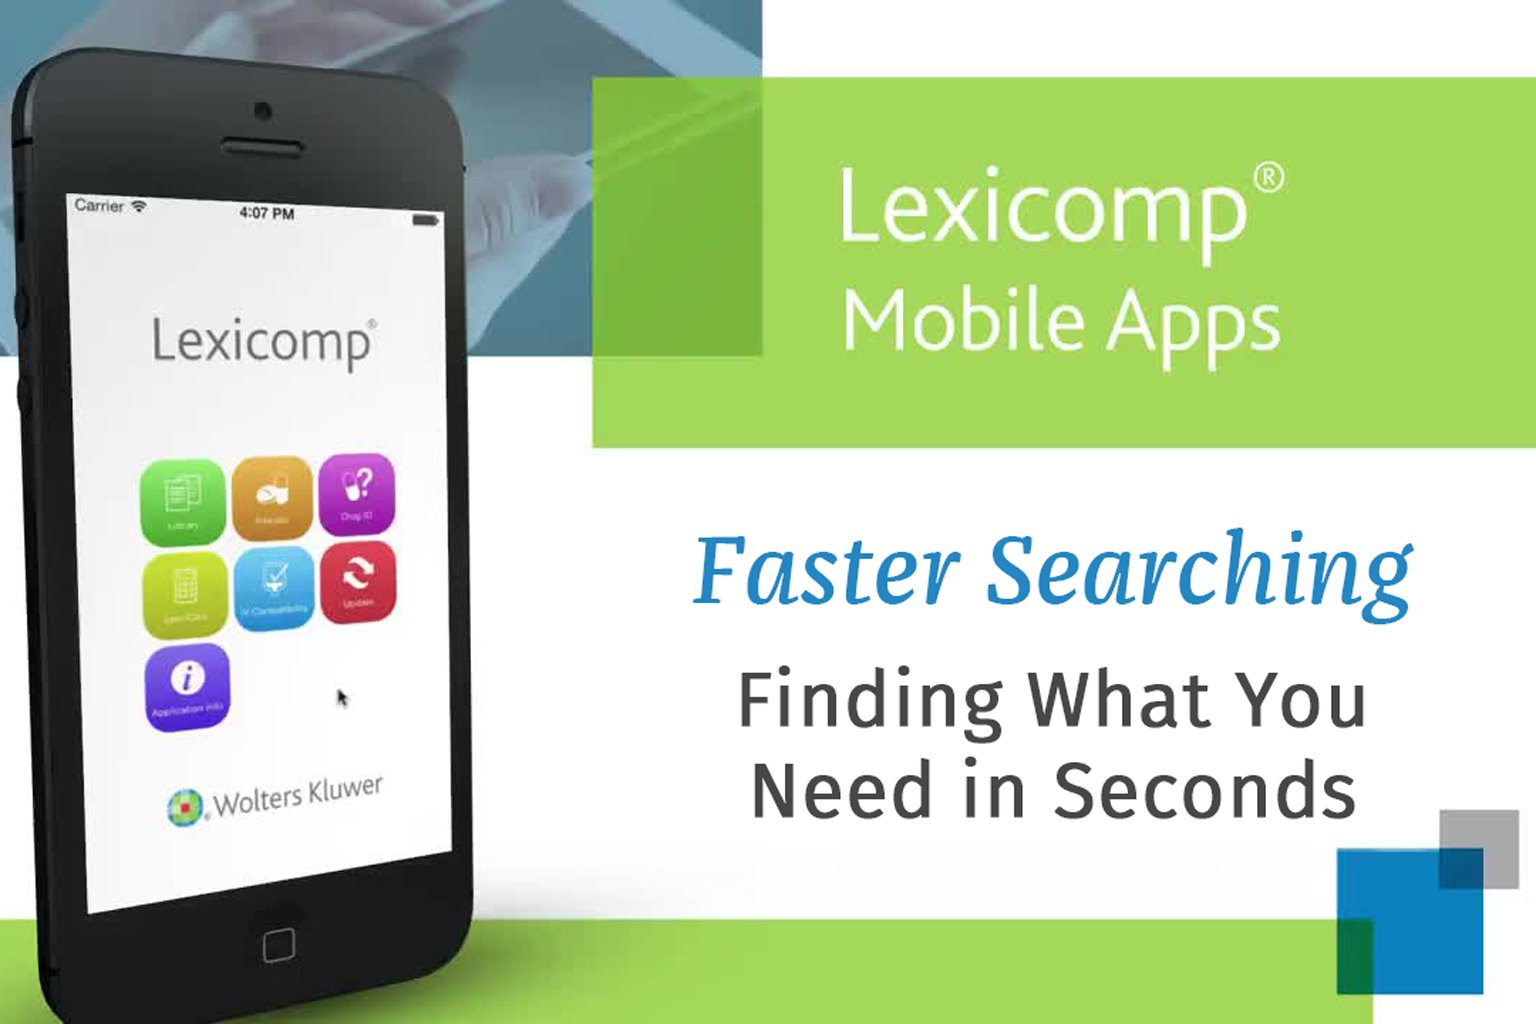 video screen - Lexicomp Mobile App Faster Searching